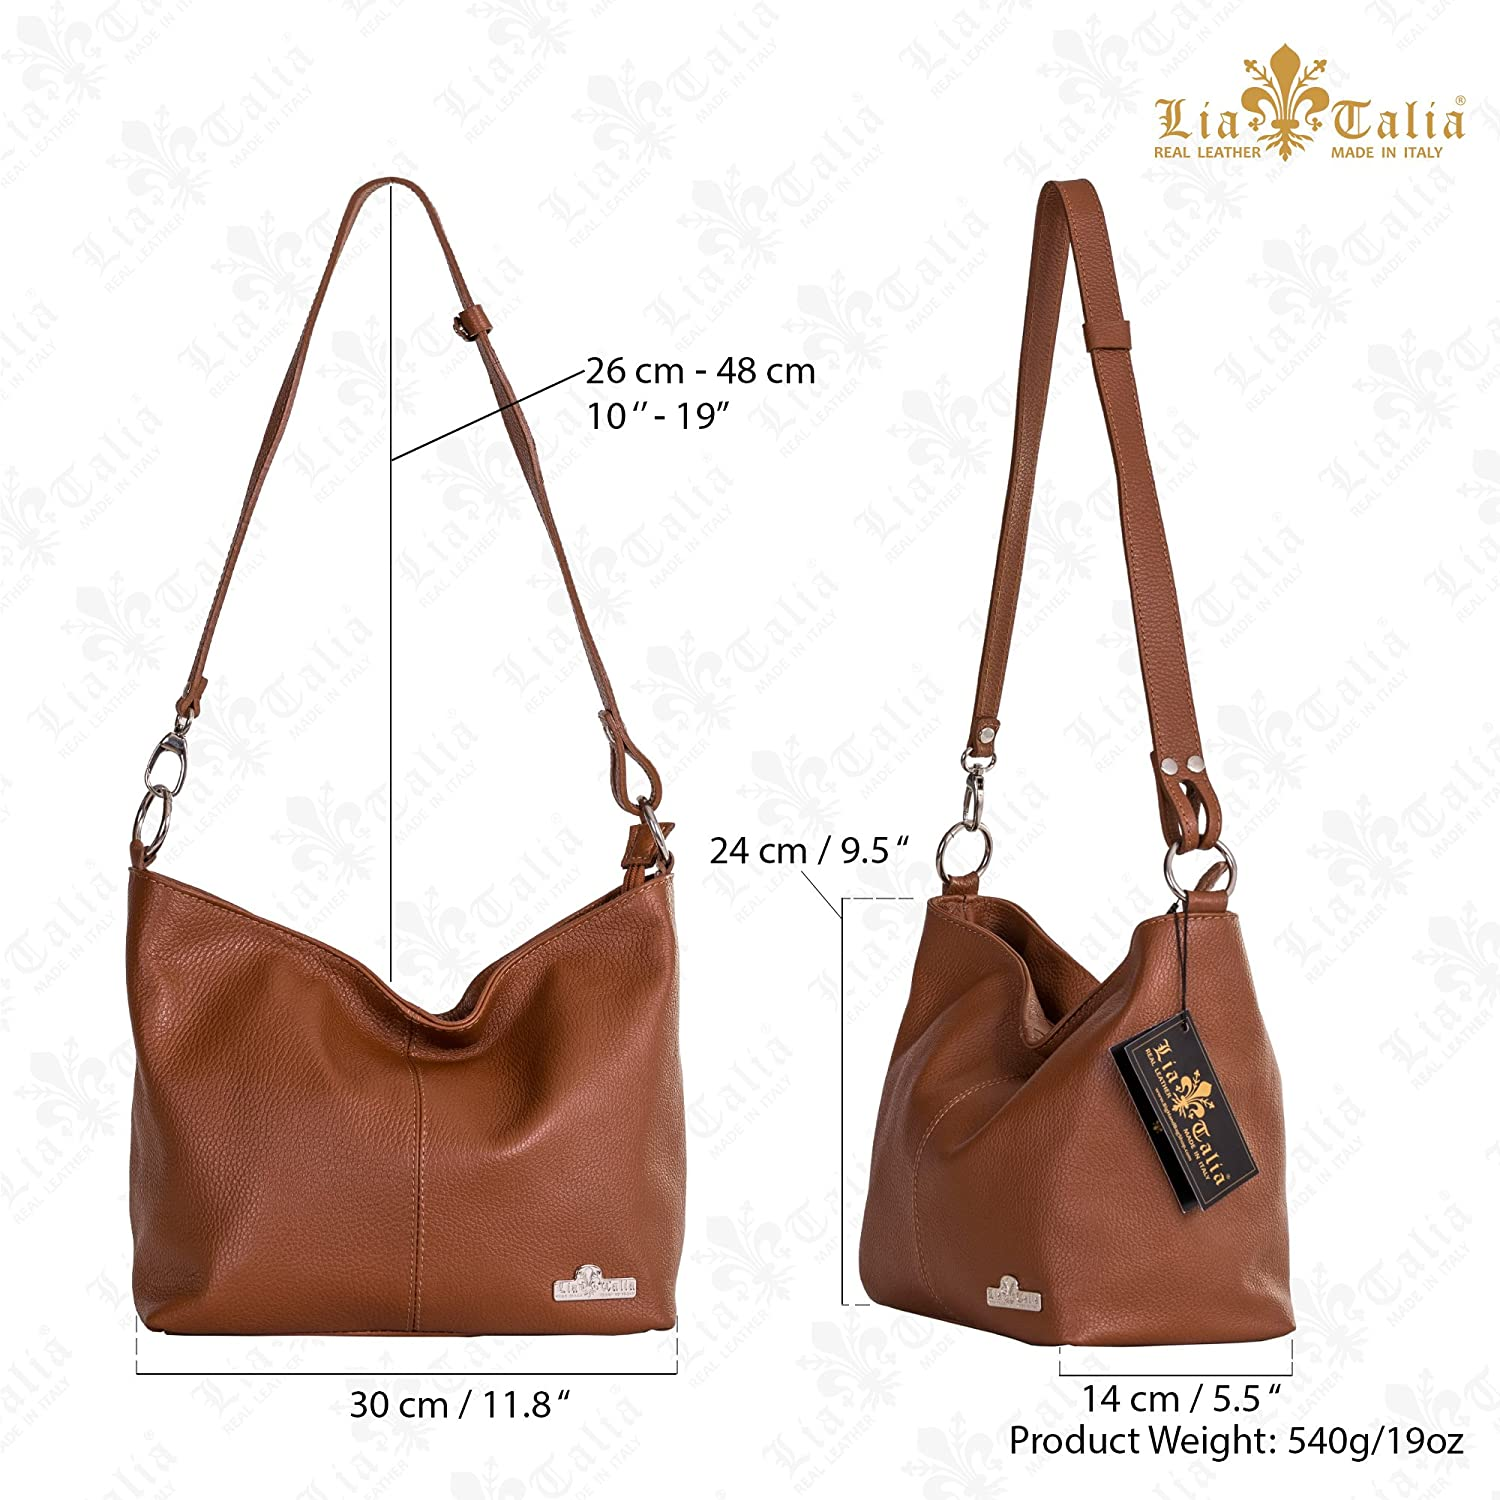 LIATALIA Womens Genuine Italian Leather Medium Size Shoulder Hobo Bag - Adjustable Long Strap Handbag - EMMY [Medium Tan] Medium Tan